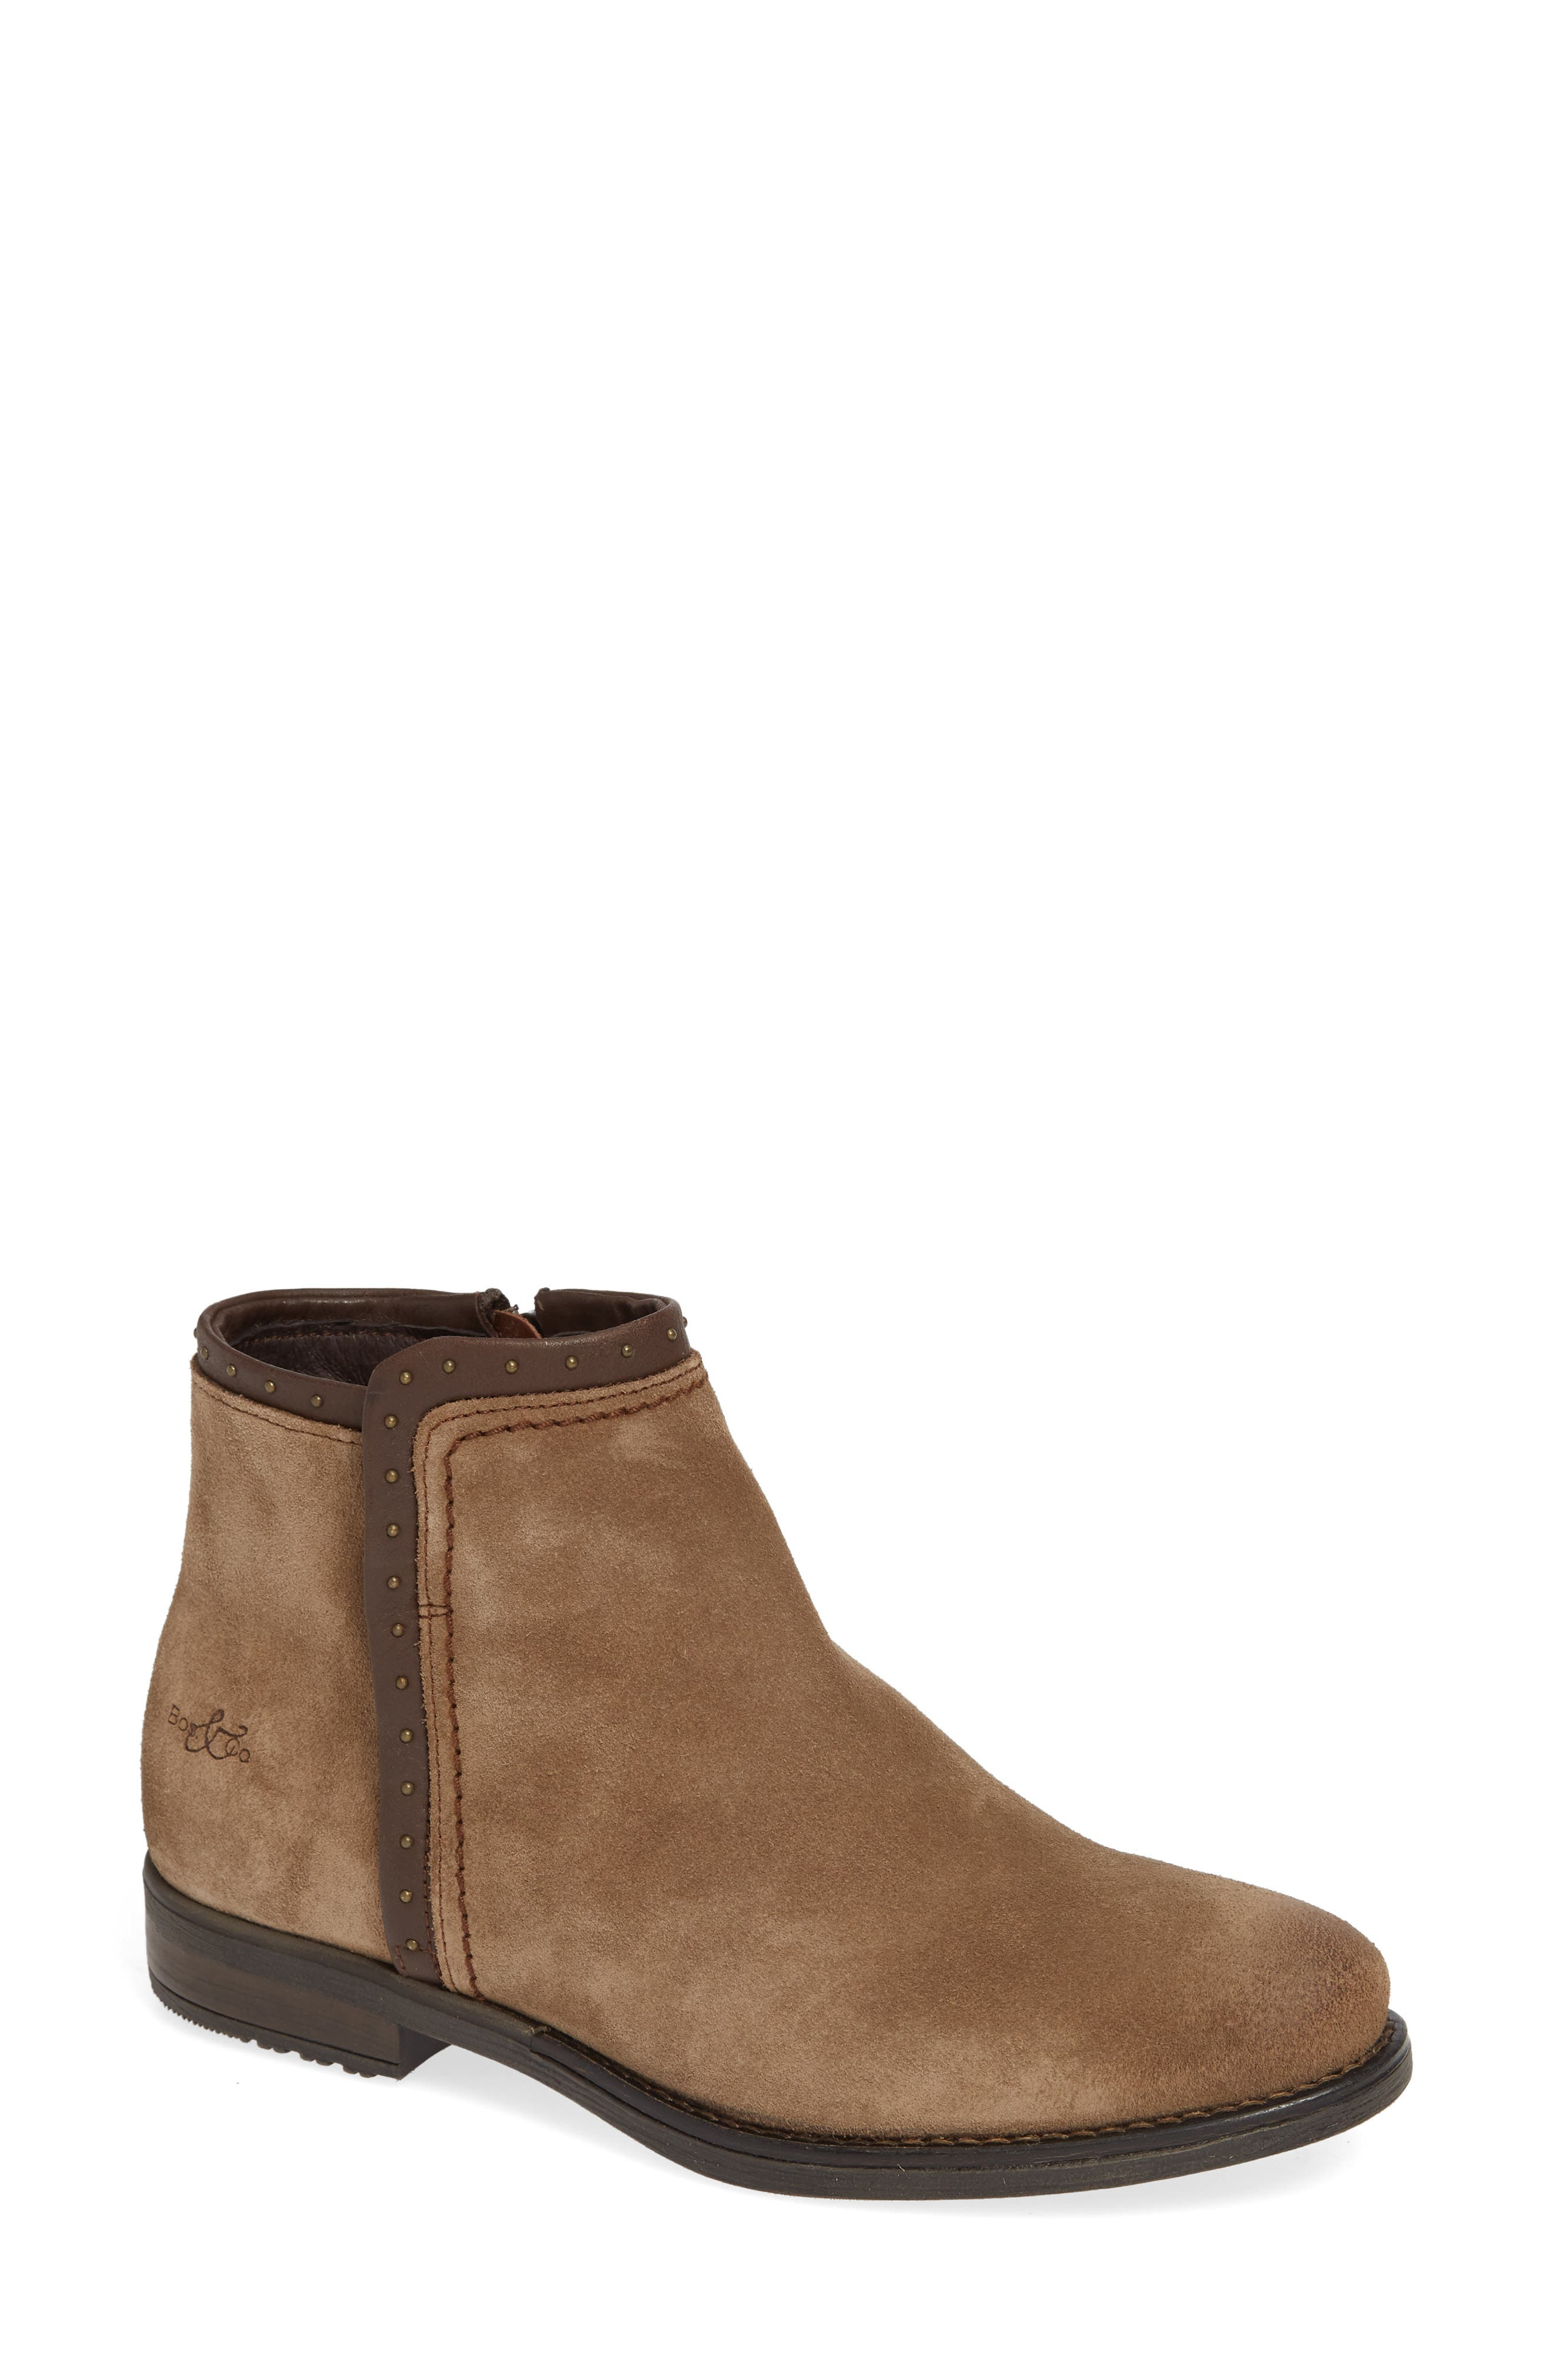 Bos. & Co. Ribos Bootie - Beige